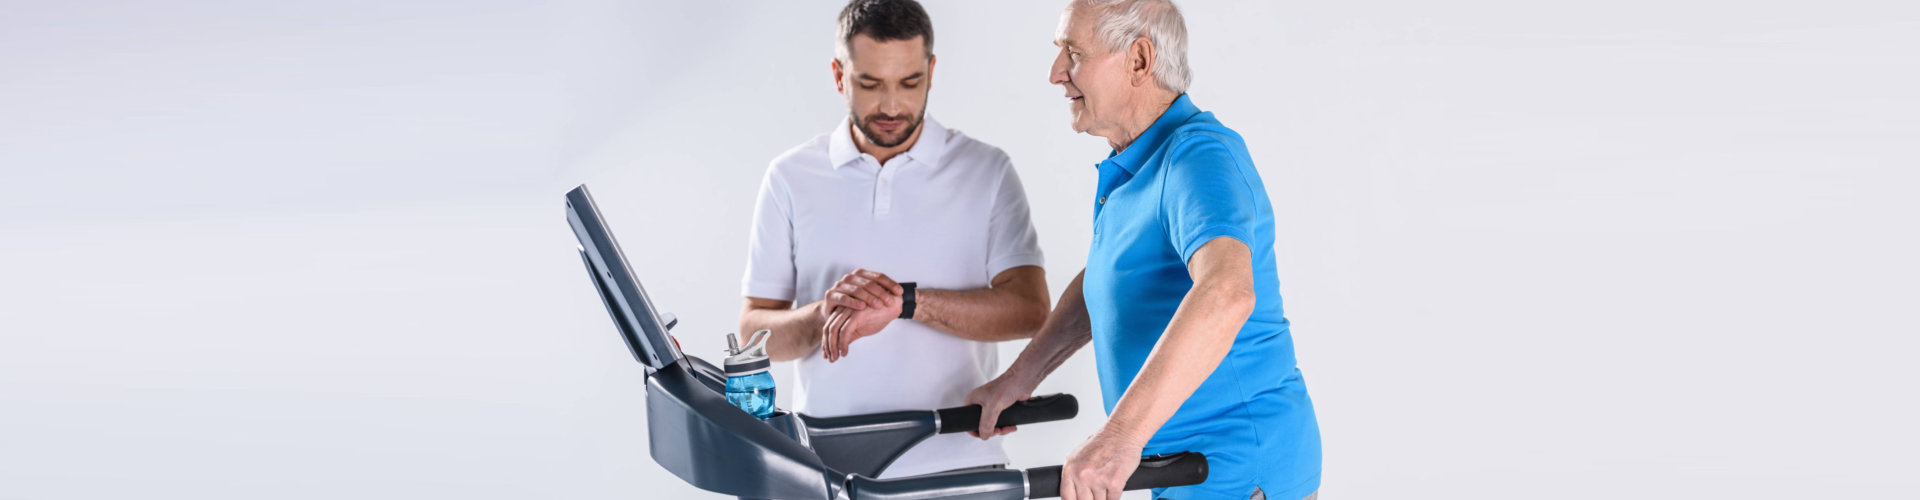 physical therapist assisting elderly doing exercise